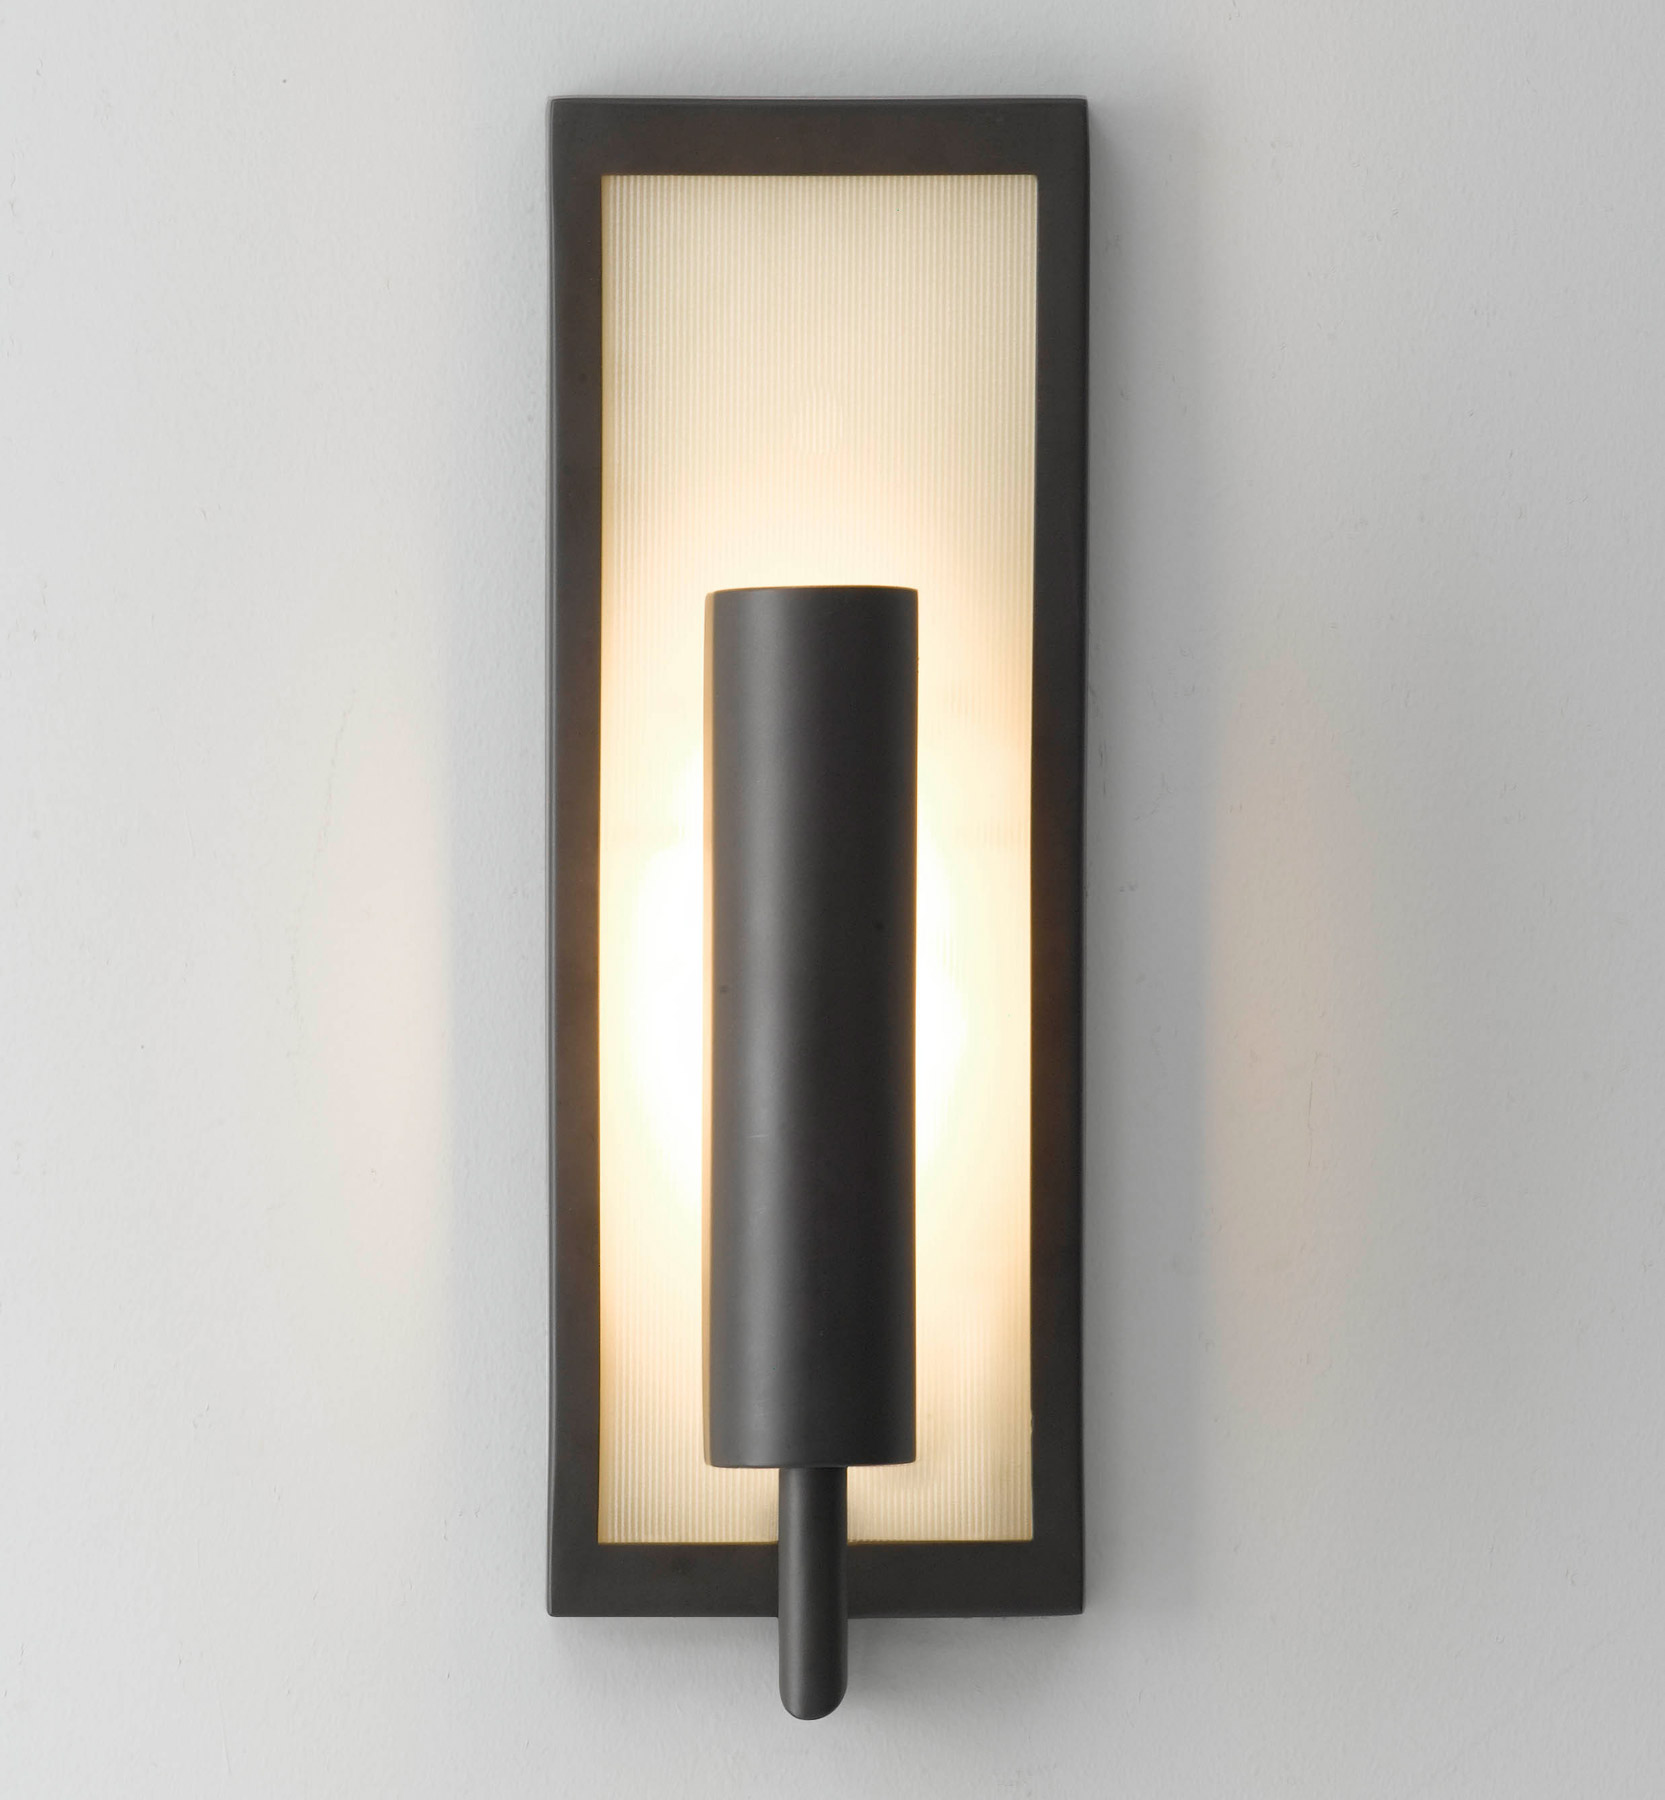 Feiss WB1451ORB Mila ADA Wall Sconce